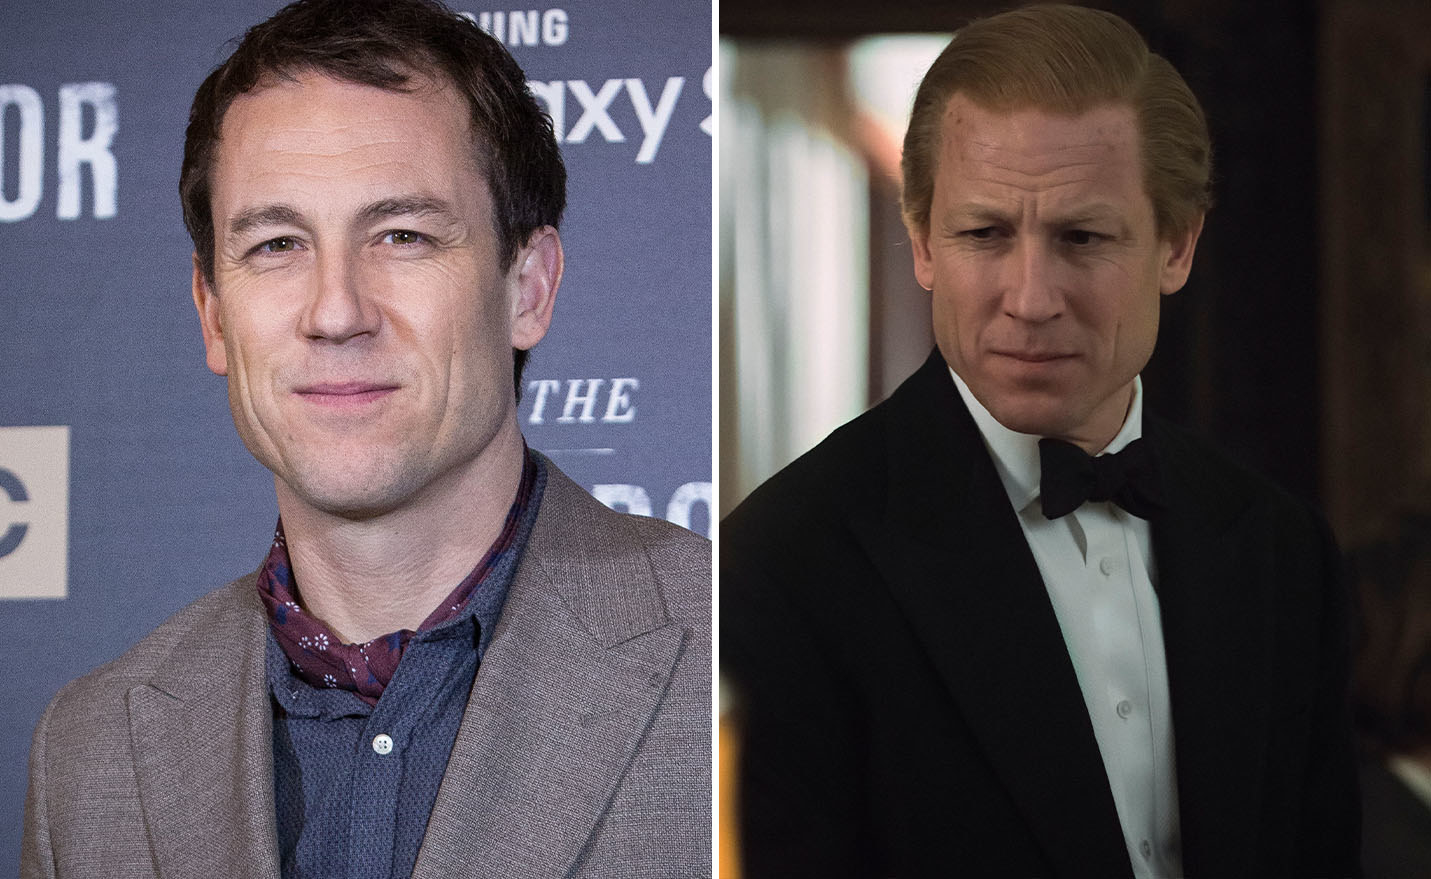 Tobias Menzies on the left and Tobias Menzies as Prince Philip on the right